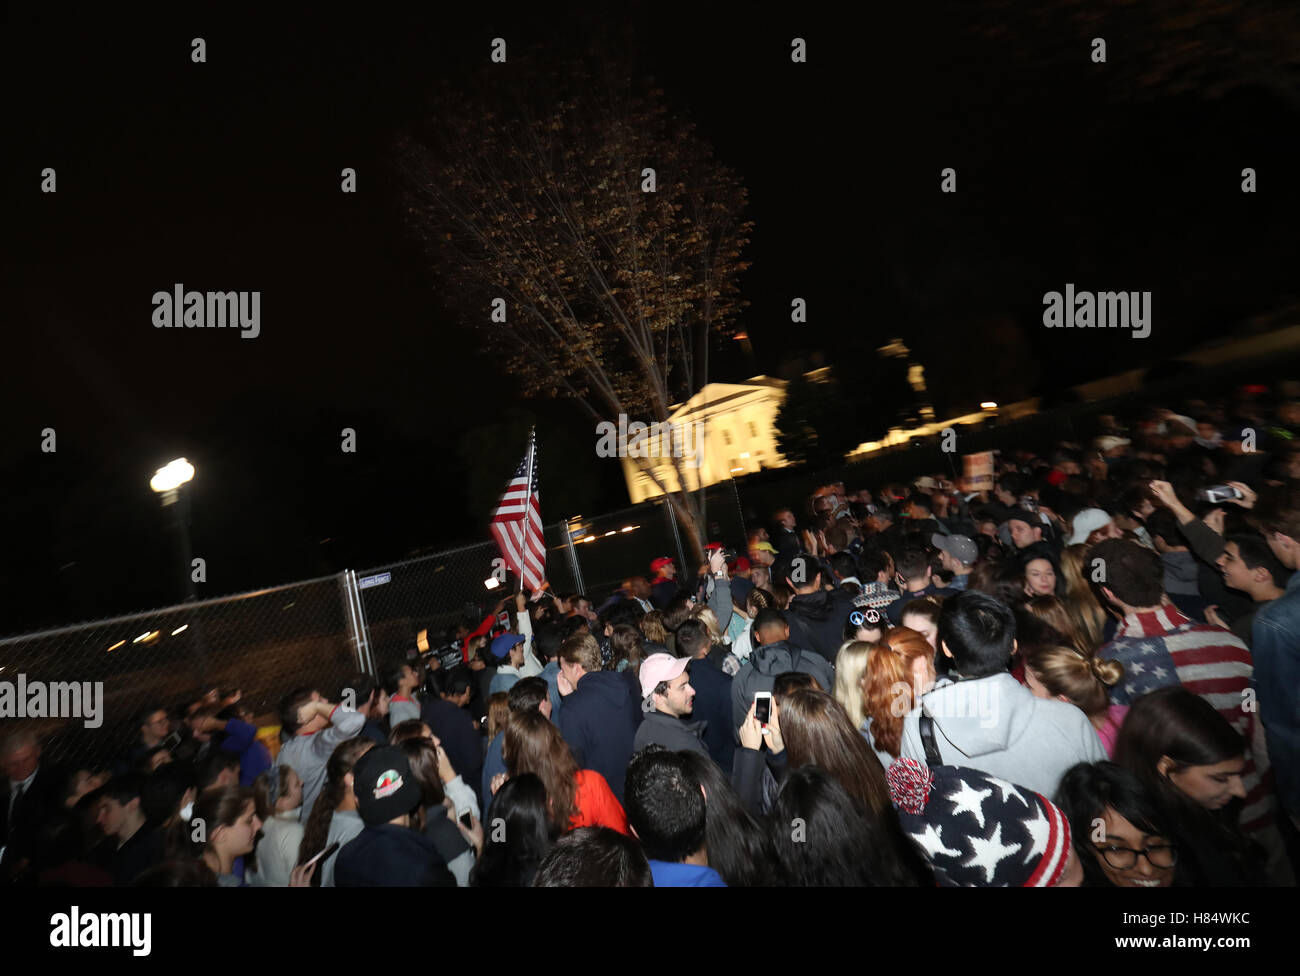 Washington, DC, USA. 8th Nov, 2016. People Assemble in front of the White House waiting for results to be finalized - Stock Image